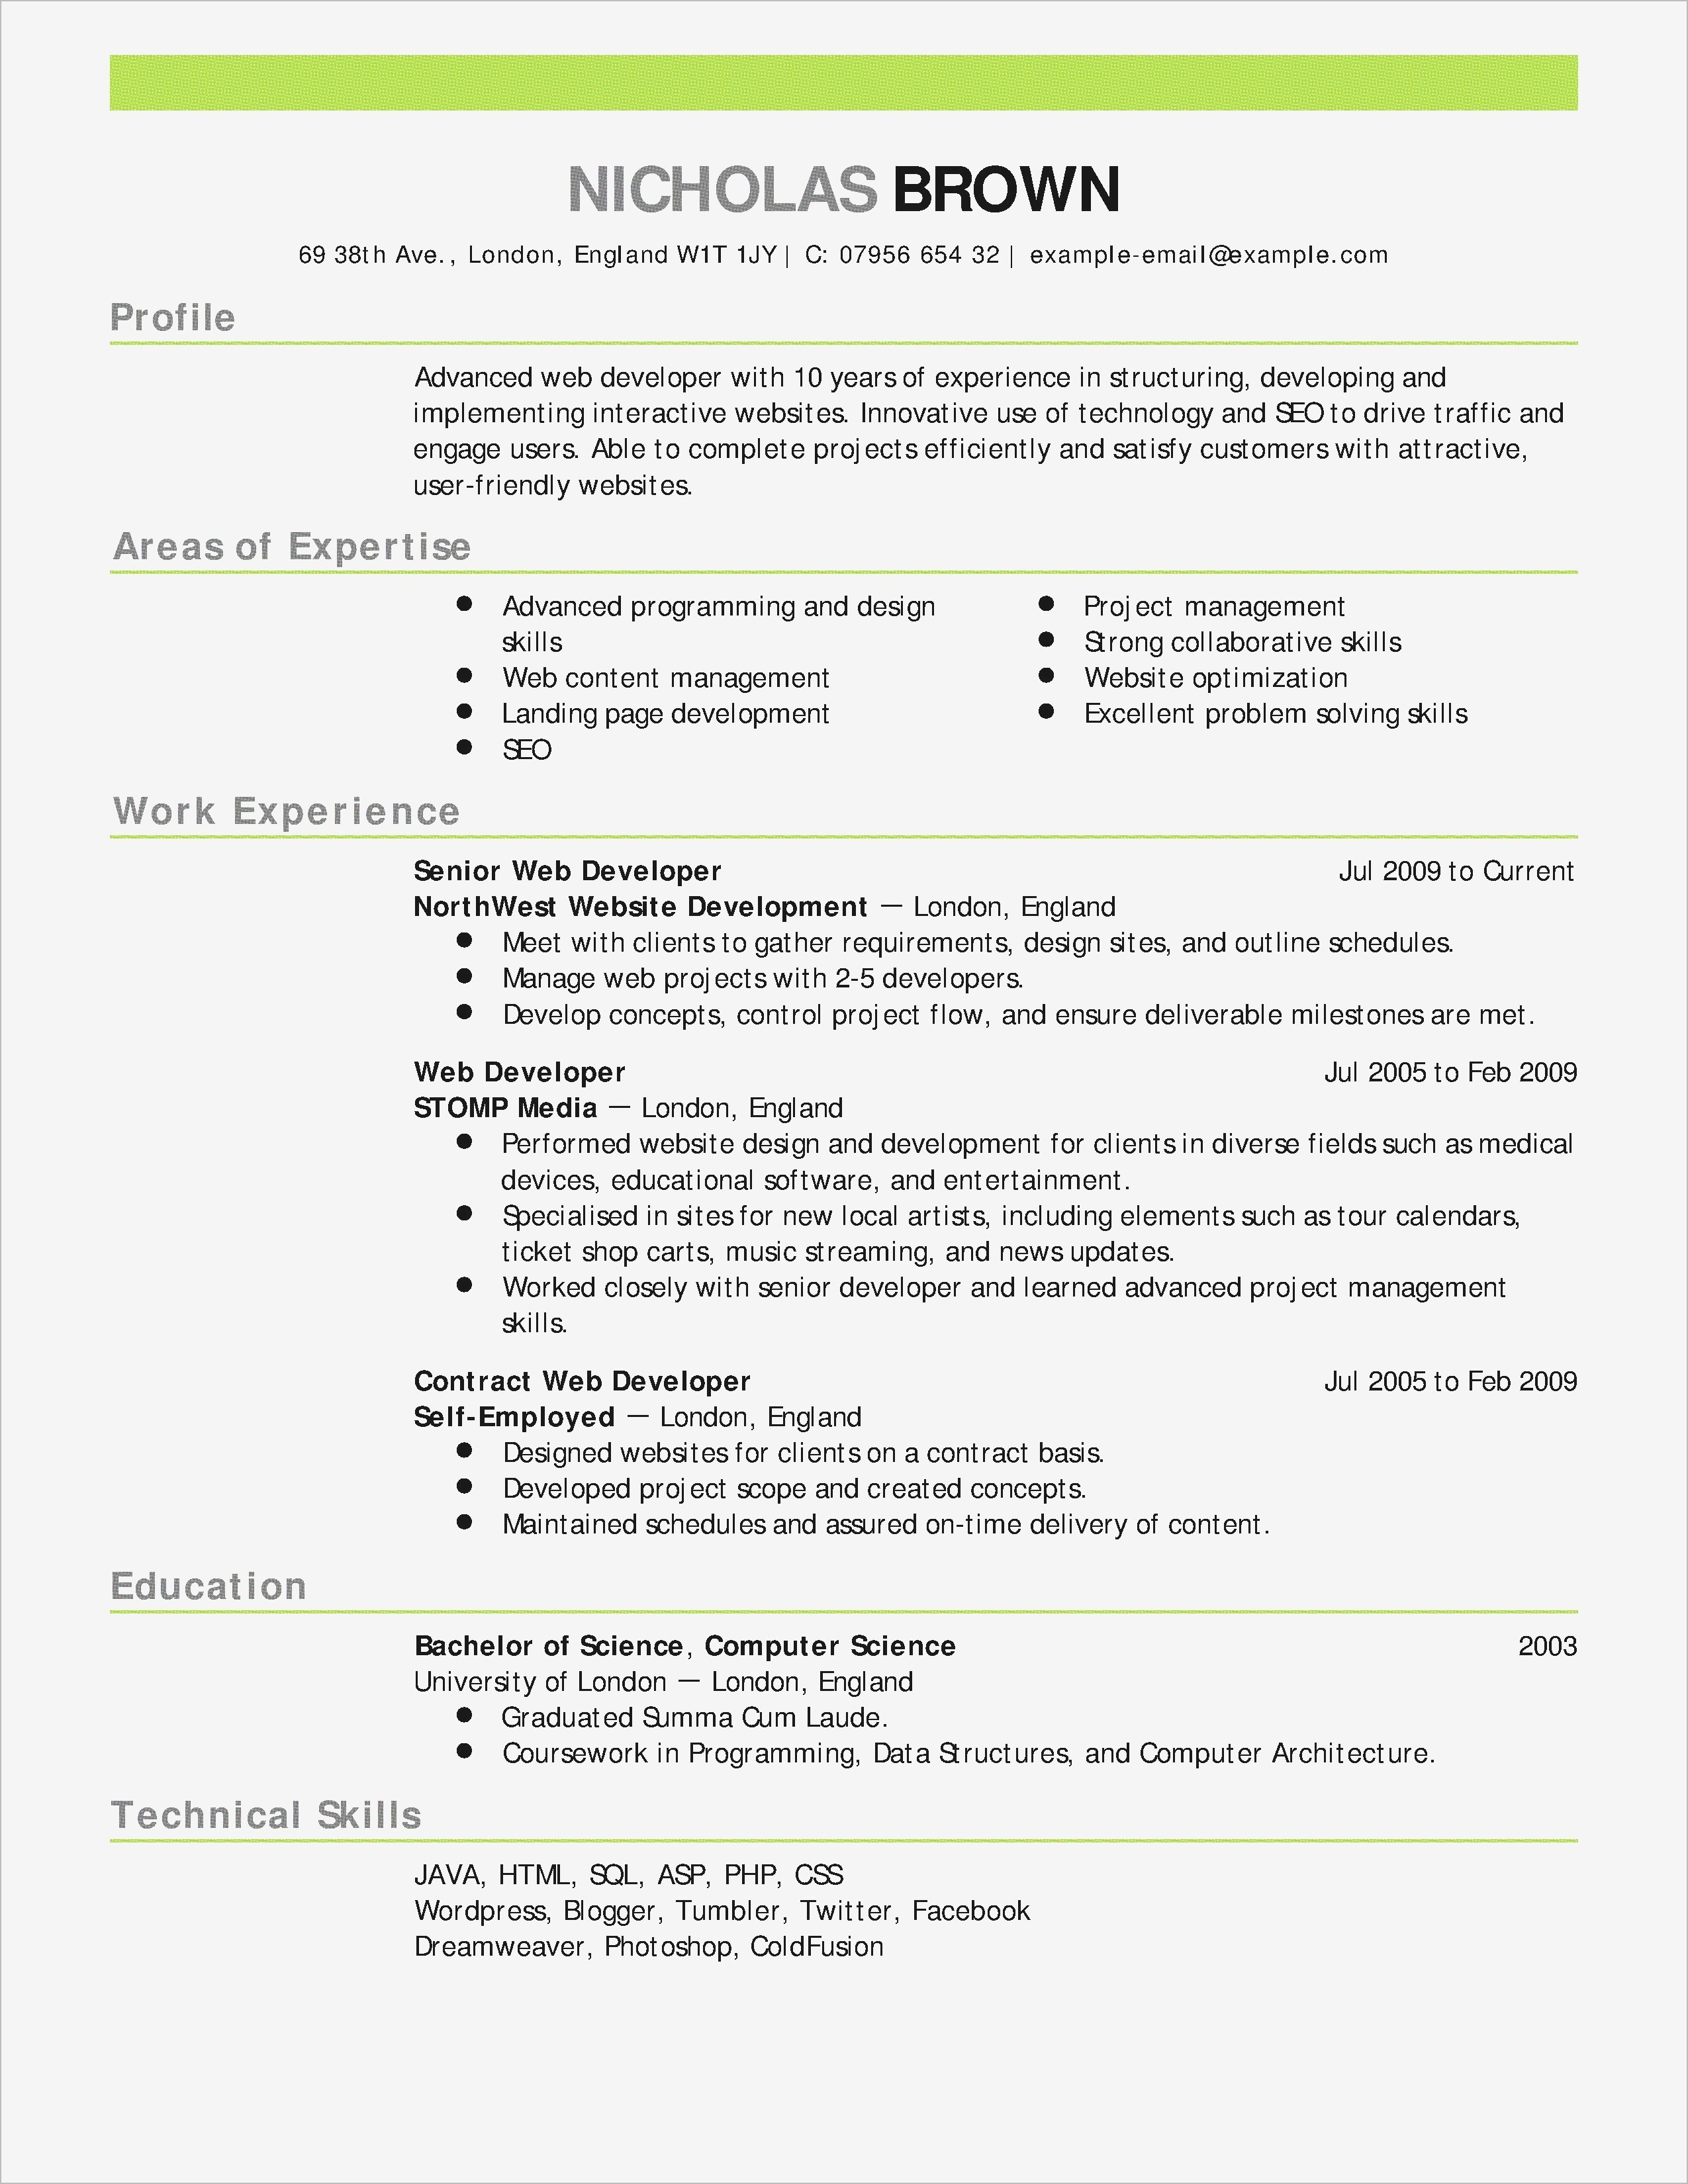 Good Words to Use On A Resume - Words to Use In A Resume Awesome Basic Resume Examples Beautiful